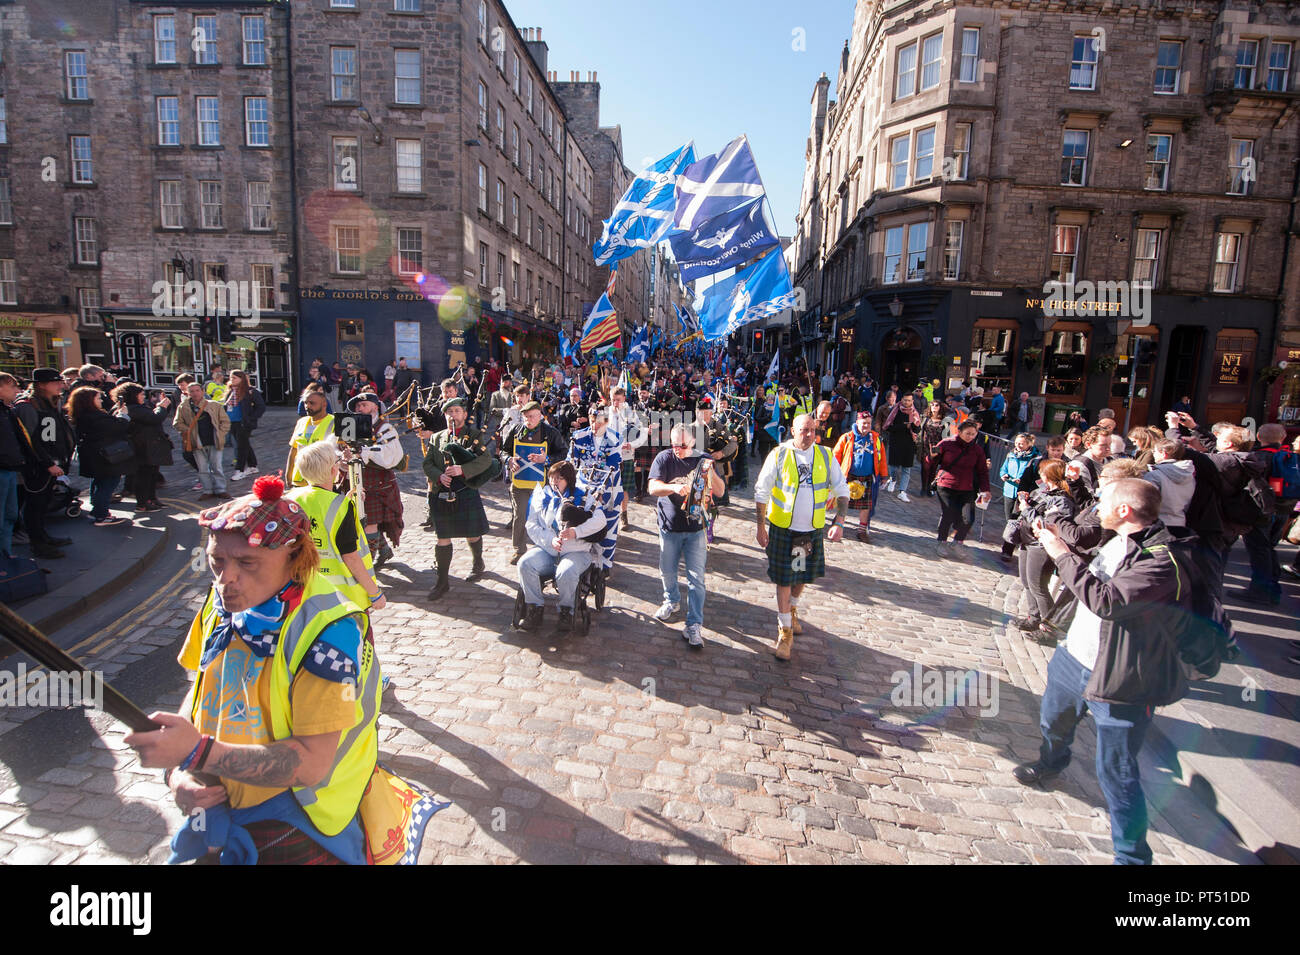 Edinburgh, UK. 6th Oct 2018. Thousands march in Edinburgh for the independence of Scotland. Thousands of Scottish independence supporters marched through Edinburgh as part of the All Under One Banner protest. All under one banner has estimated attendance in 100,000 independence supporters. Credit: Pep Masip/Alamy Live News - Stock Image